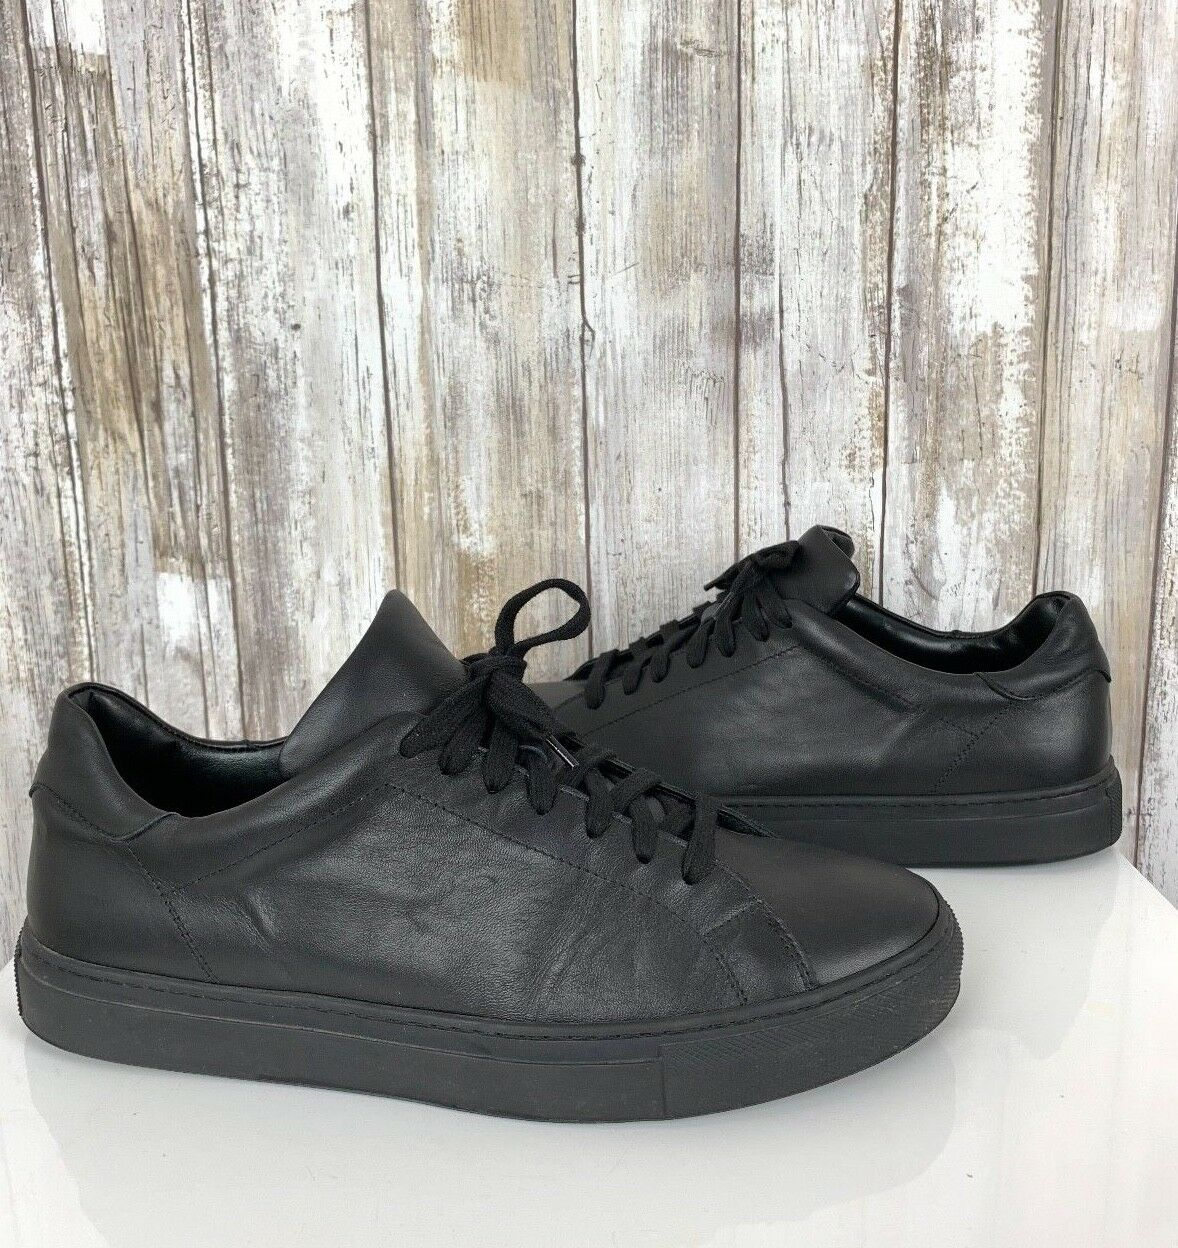 Svensson Classic Black Leather Low Cut Sneakers Lace Up 40 Mens 7 Womens 9 ITALY